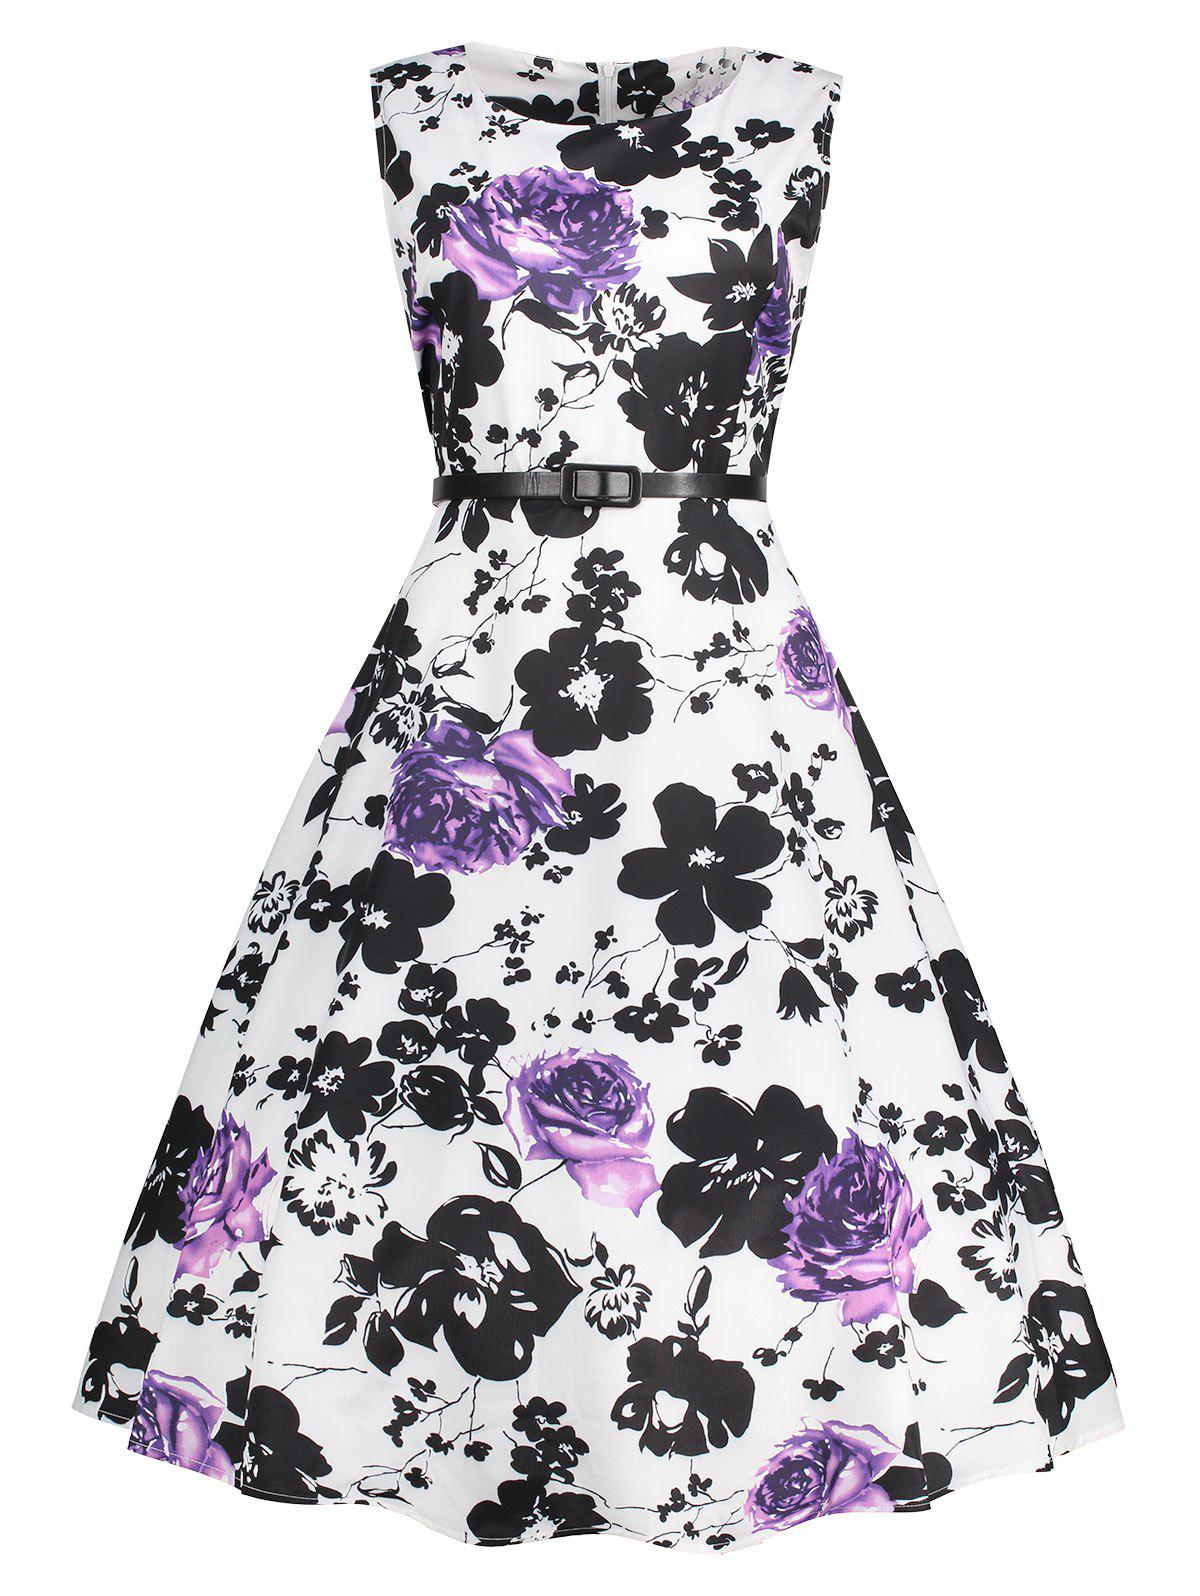 Plus Size Floral Printed Sleeveless Pin Up DressWOMEN<br><br>Size: 5XL; Color: PURPLE; Style: Cute; Material: Cotton Blend,Polyester; Silhouette: A-Line; Dresses Length: Mid-Calf; Neckline: Round Collar; Sleeve Length: Sleeveless; Waist: High Waisted; Pattern Type: Floral,Print; With Belt: No; Season: Fall,Winter; Weight: 0.3500kg; Package Contents: 1 x Dress;